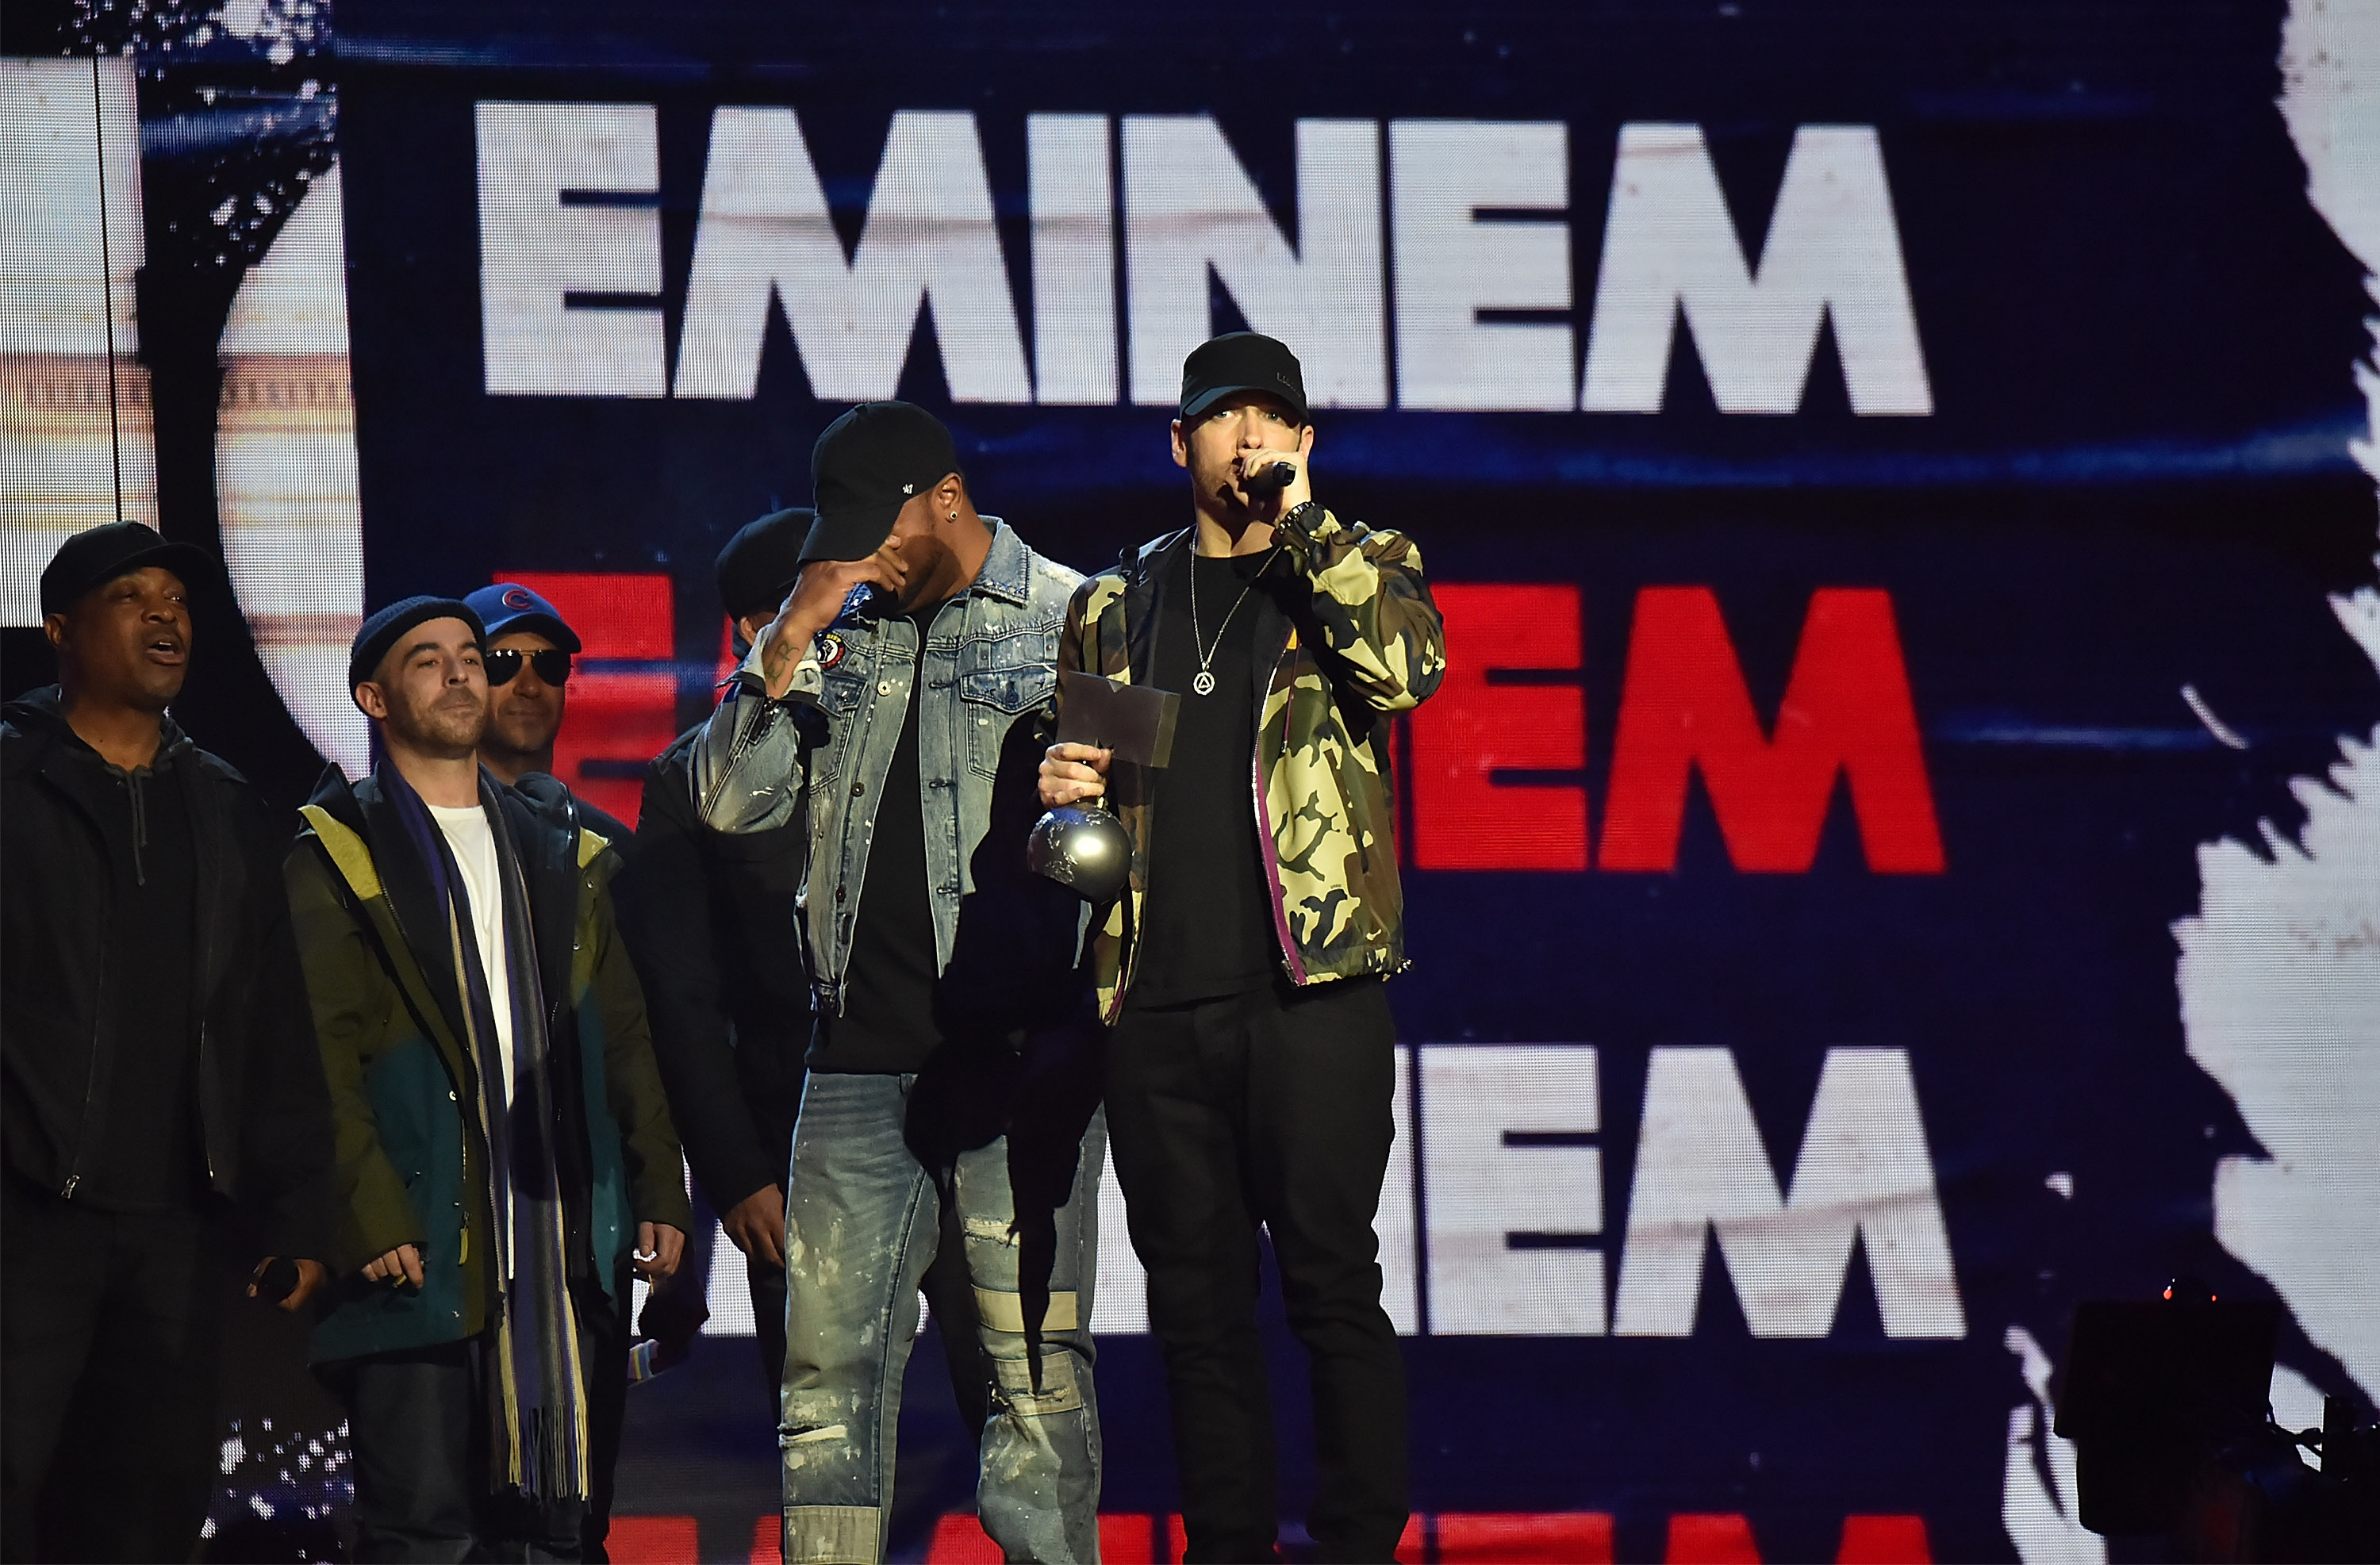 LONDON, ENGLAND - NOVEMBER 12: Eminem accepts award on stage during the MTV EMAs 2017 held at The SSE Arena, Wembley on November 12, 2017 in London, England. (Photo by Kevin Mazur/WireImage)